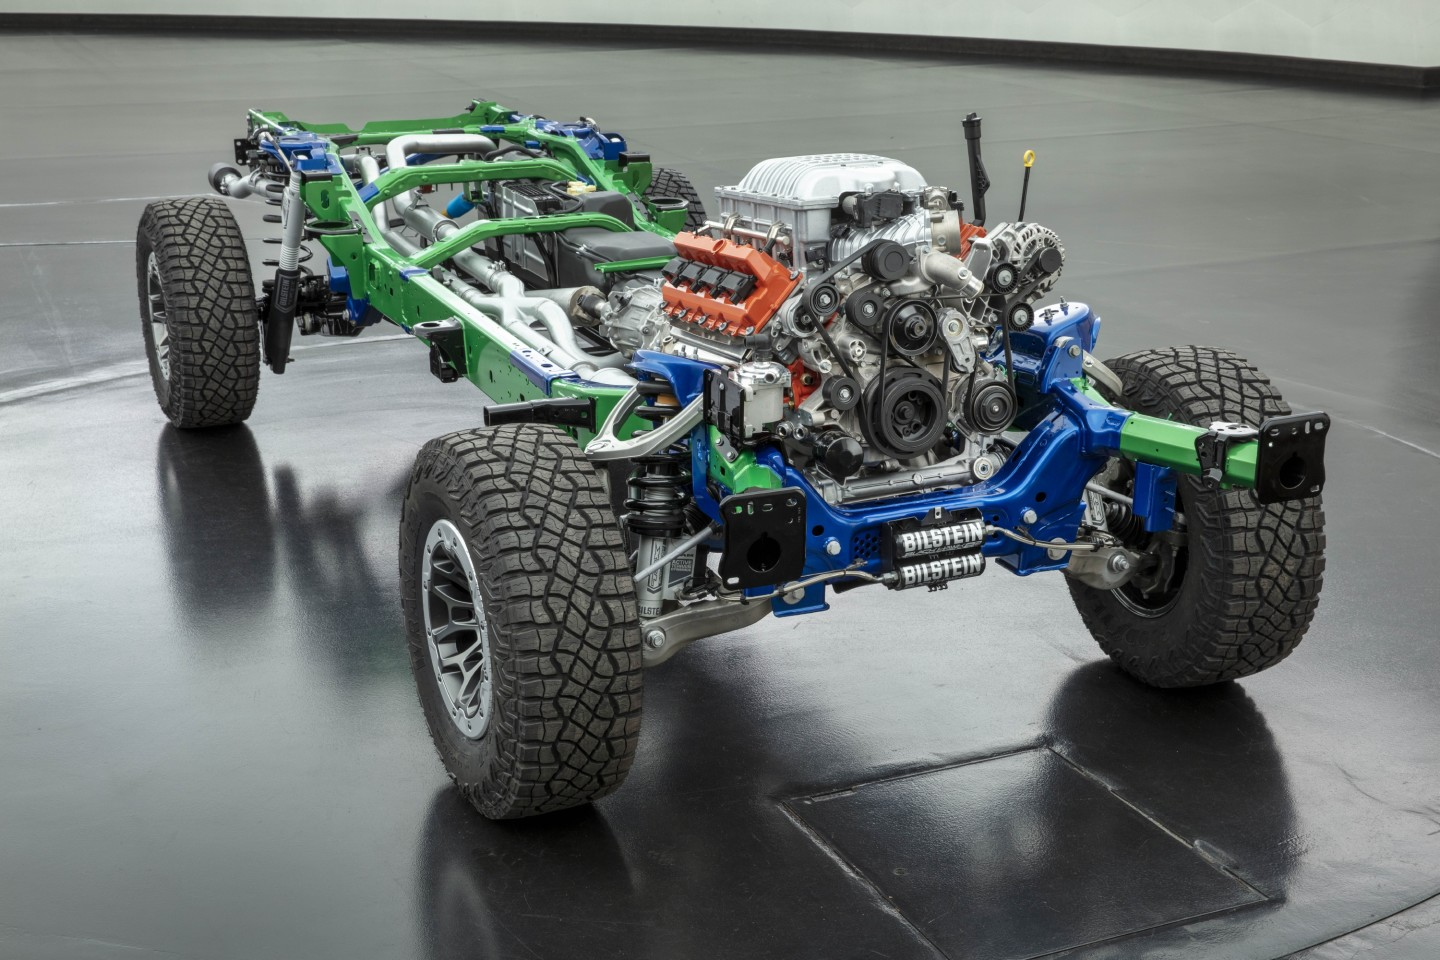 2021 Ram 1500 TRX rolling chassis